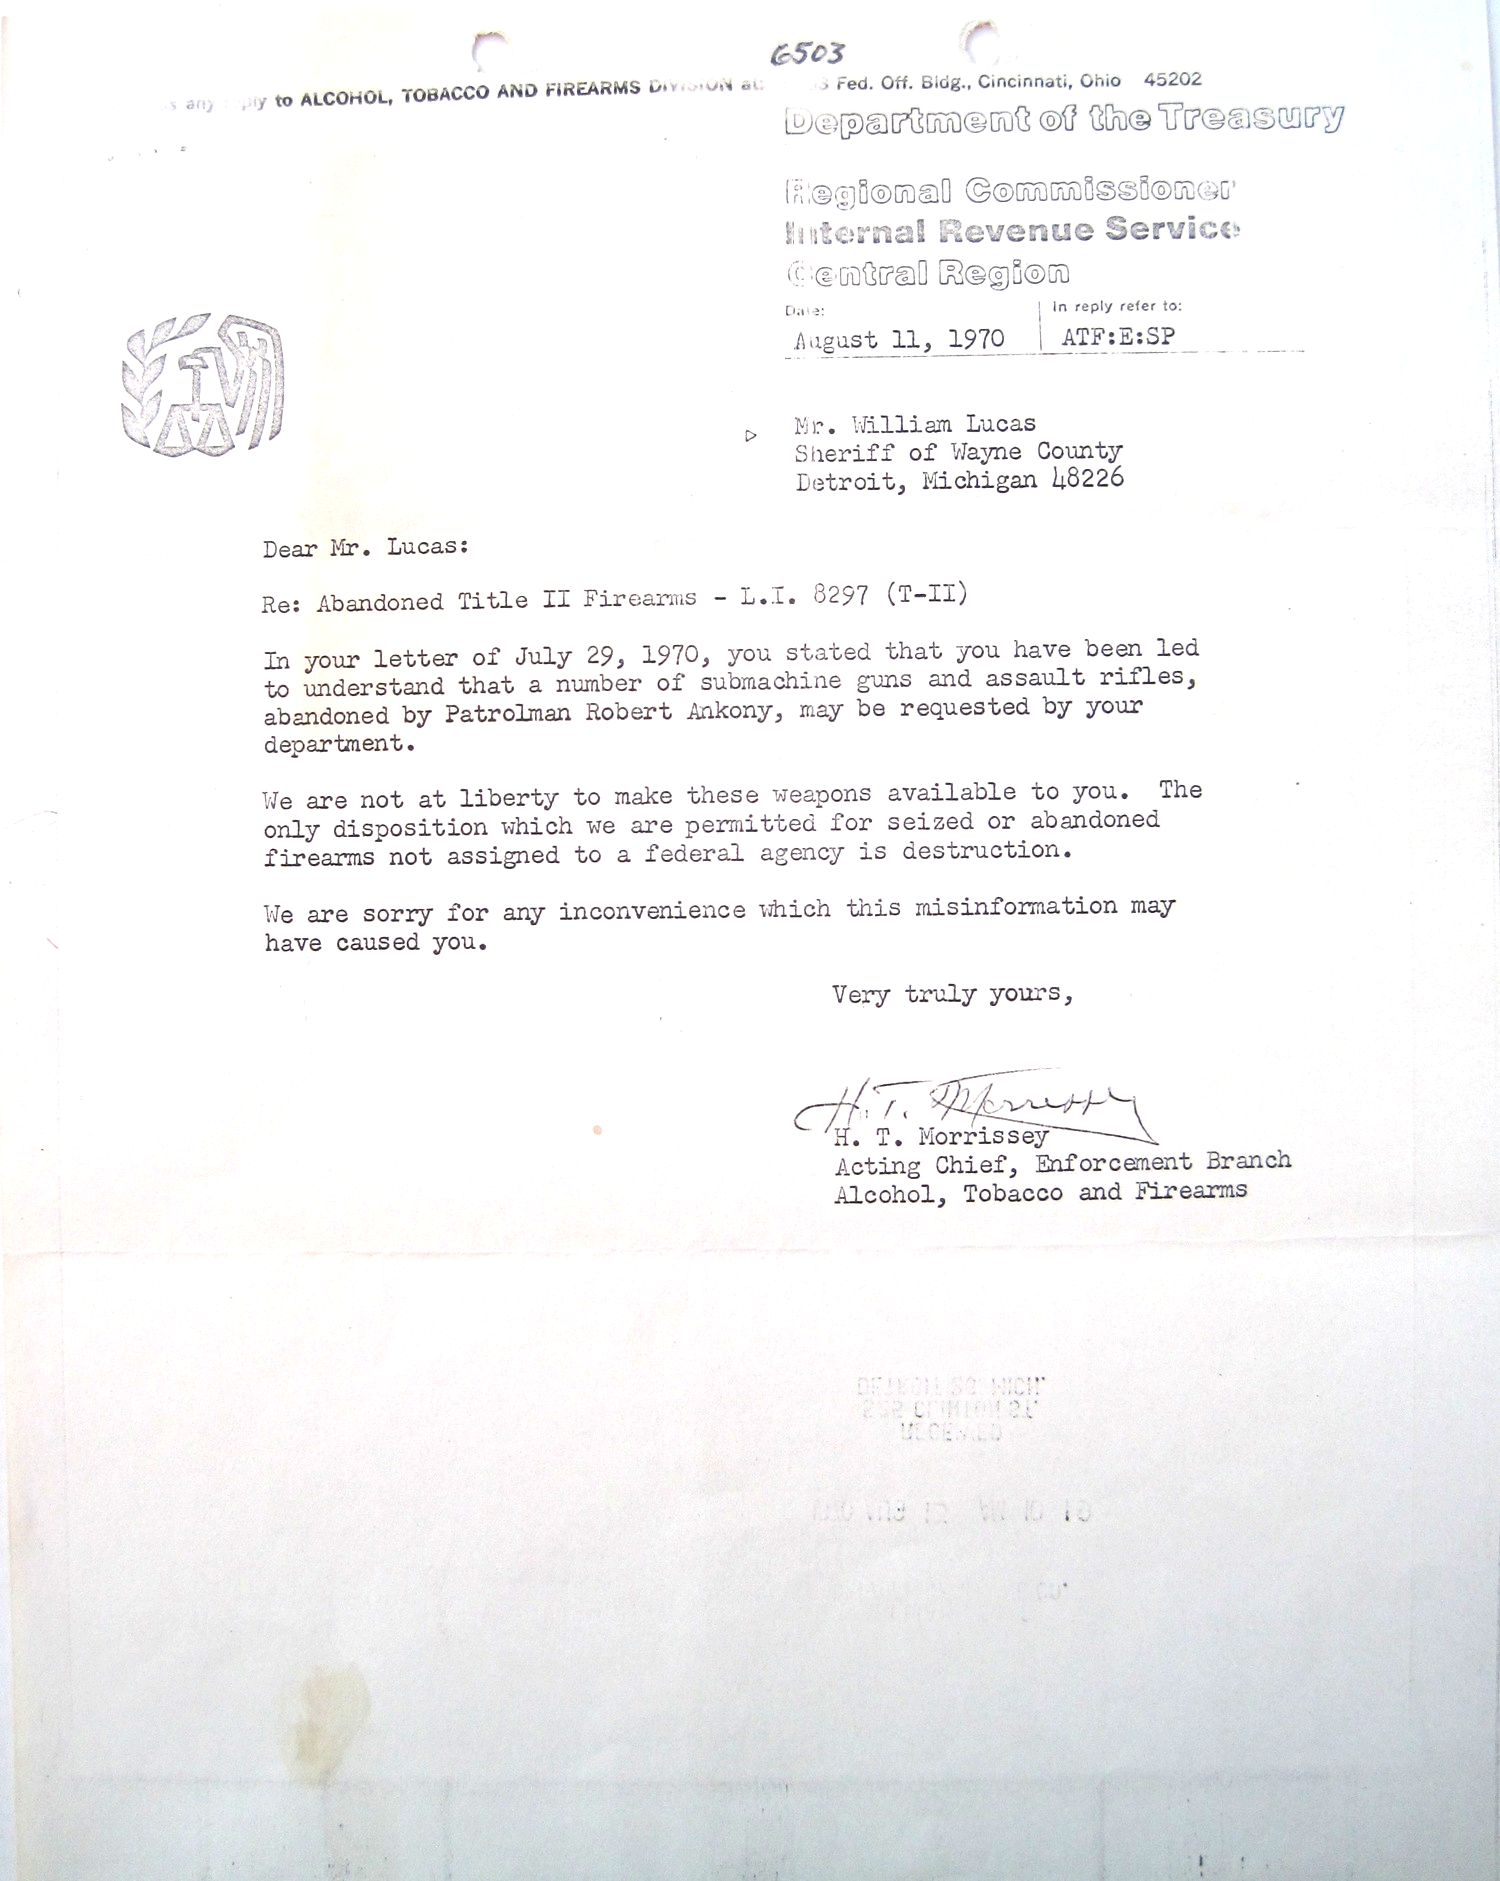 August 1970, ATF reply